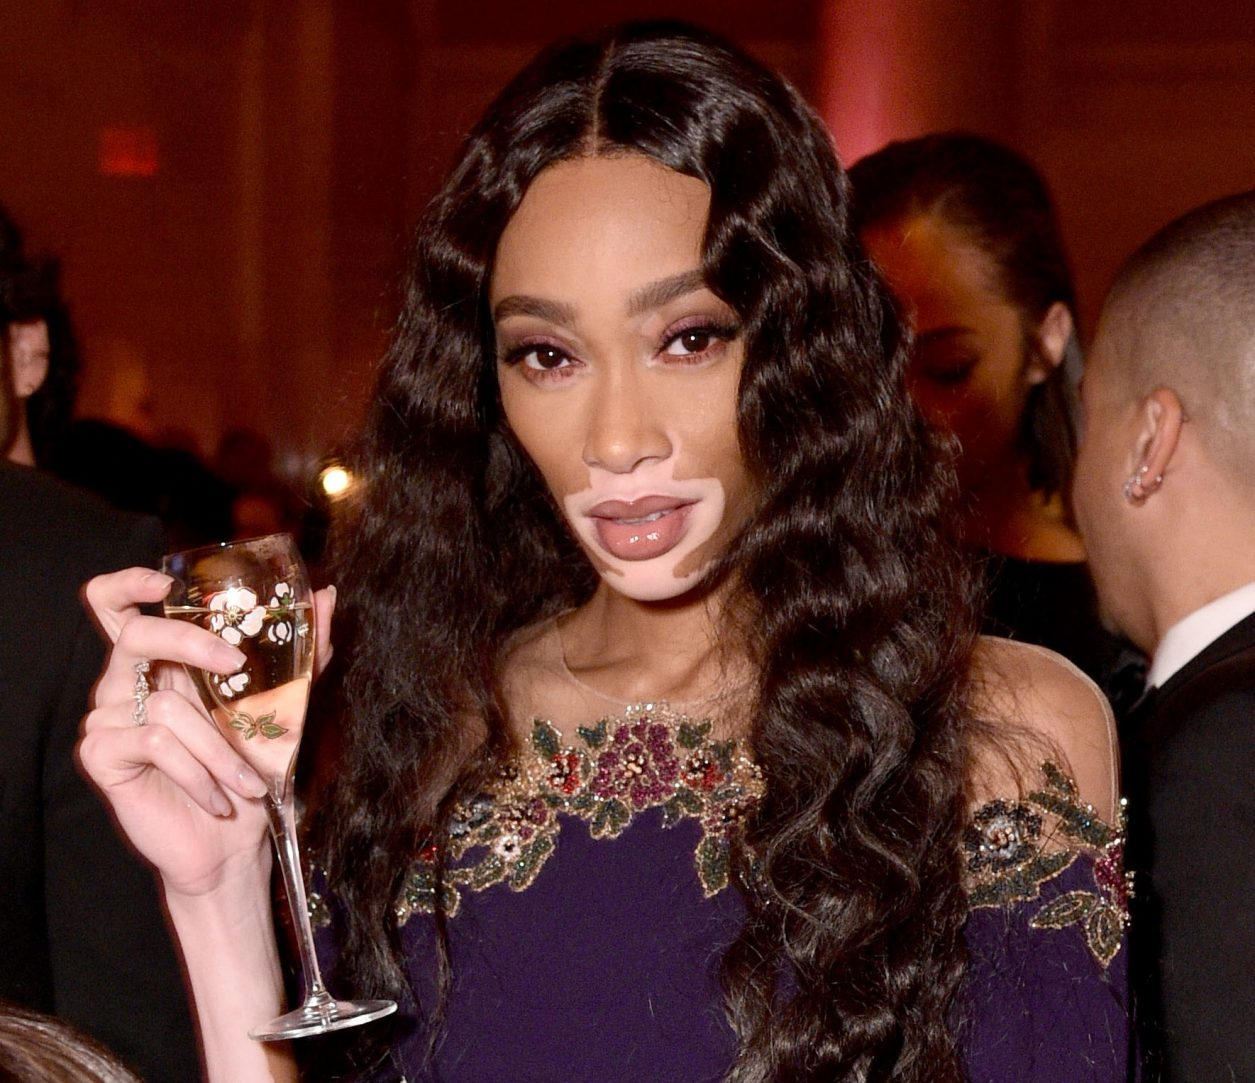 NEW YORK, NEW YORK - FEBRUARY 06: Winnie Harlow attends the amfAR Gala New York 2019 at Cipriani Wall Street on February 06, 2019 in New York City. (Photo by Bryan Bedder/Getty Images for Perrier-Jouët and Absolut Elyx)